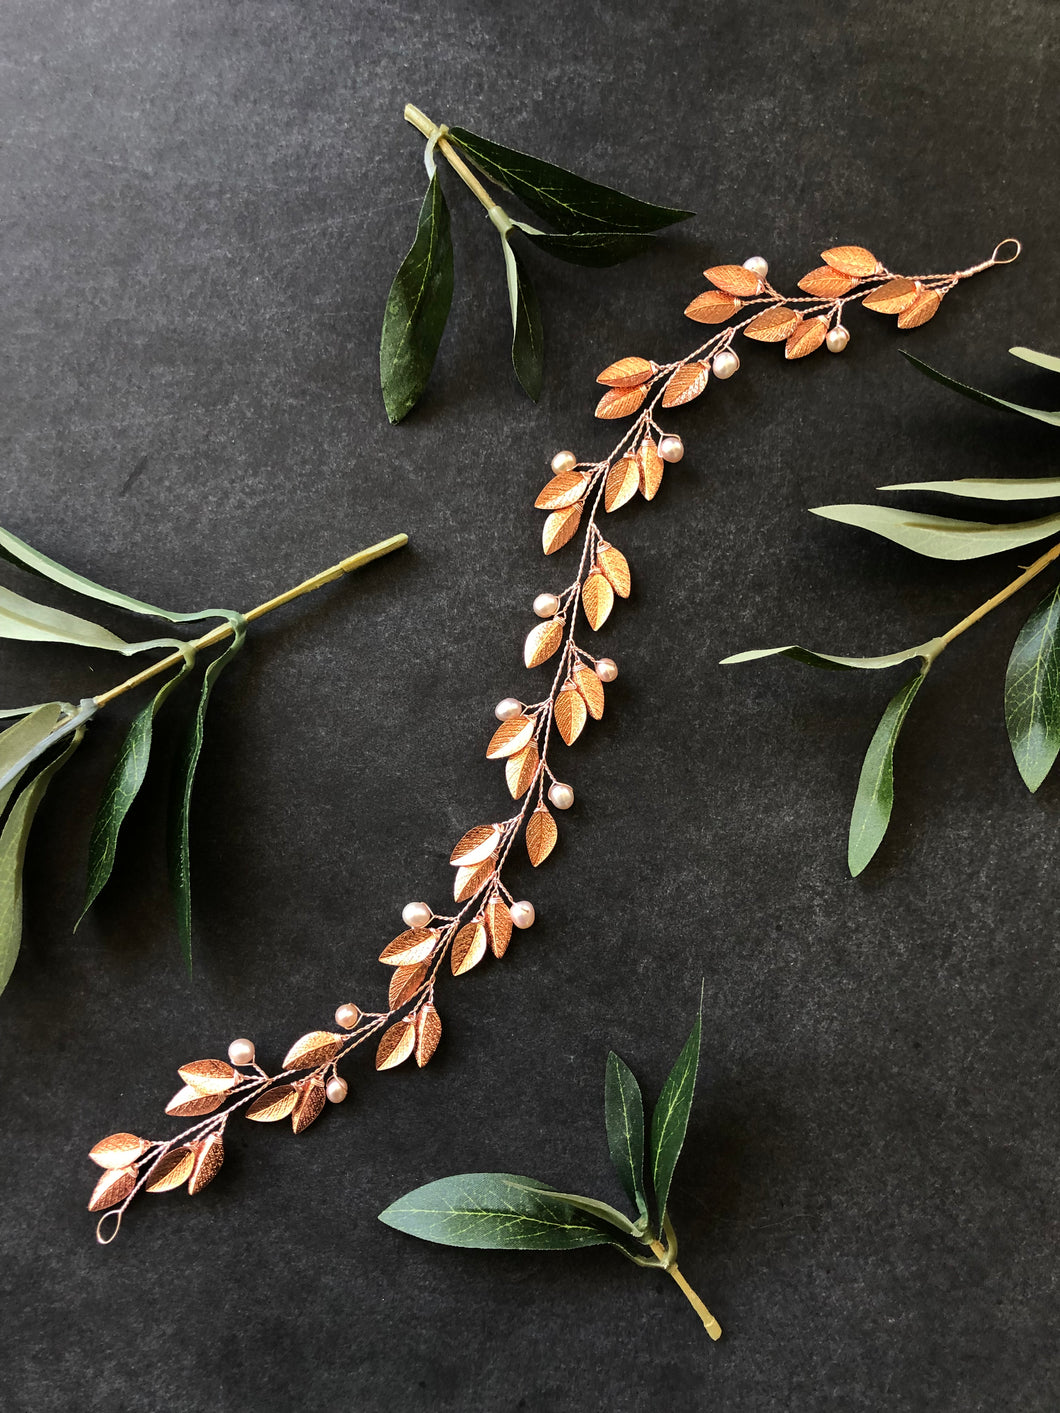 ROSE GOLD & BLUSH Pearl Bridal Hair Vine | Feather Bridal Hair Vine, Freshwater Pearl Braid Vine